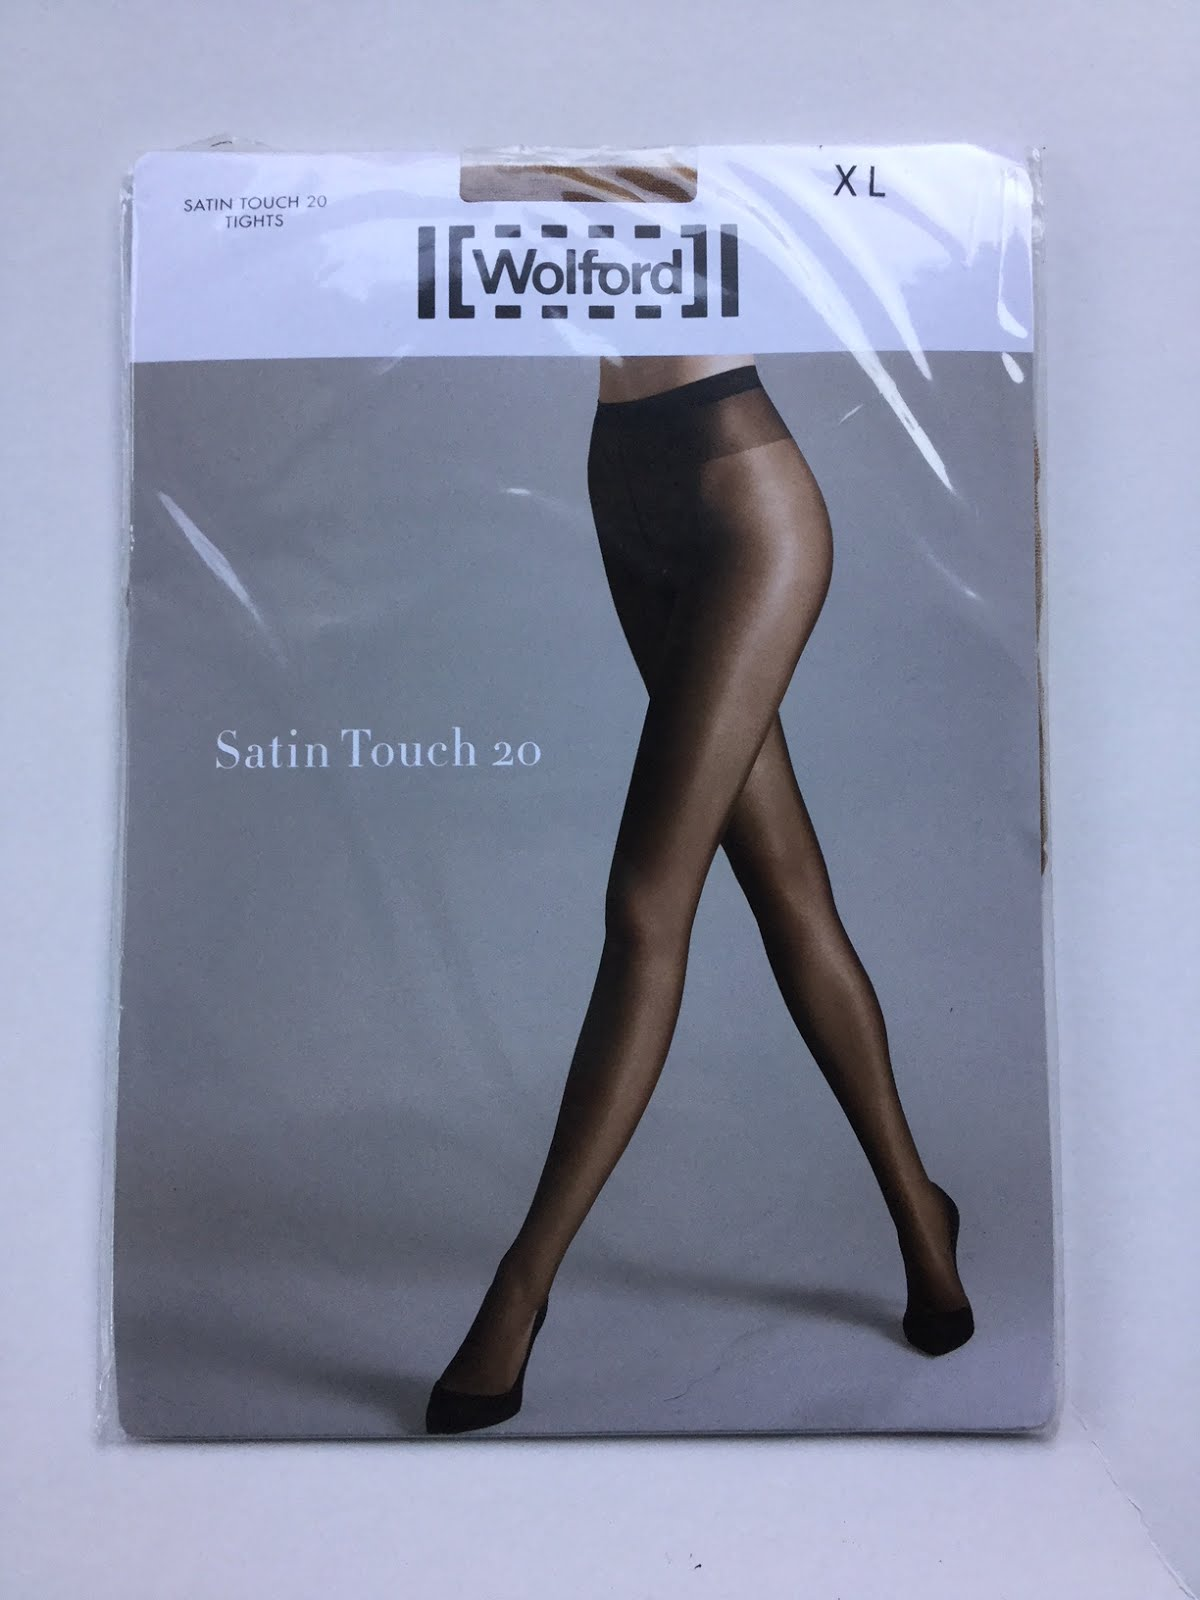 eaa347d87fdb1 Hosiery For Men: Reviewed: Wolford Satin Touch 20 Tights